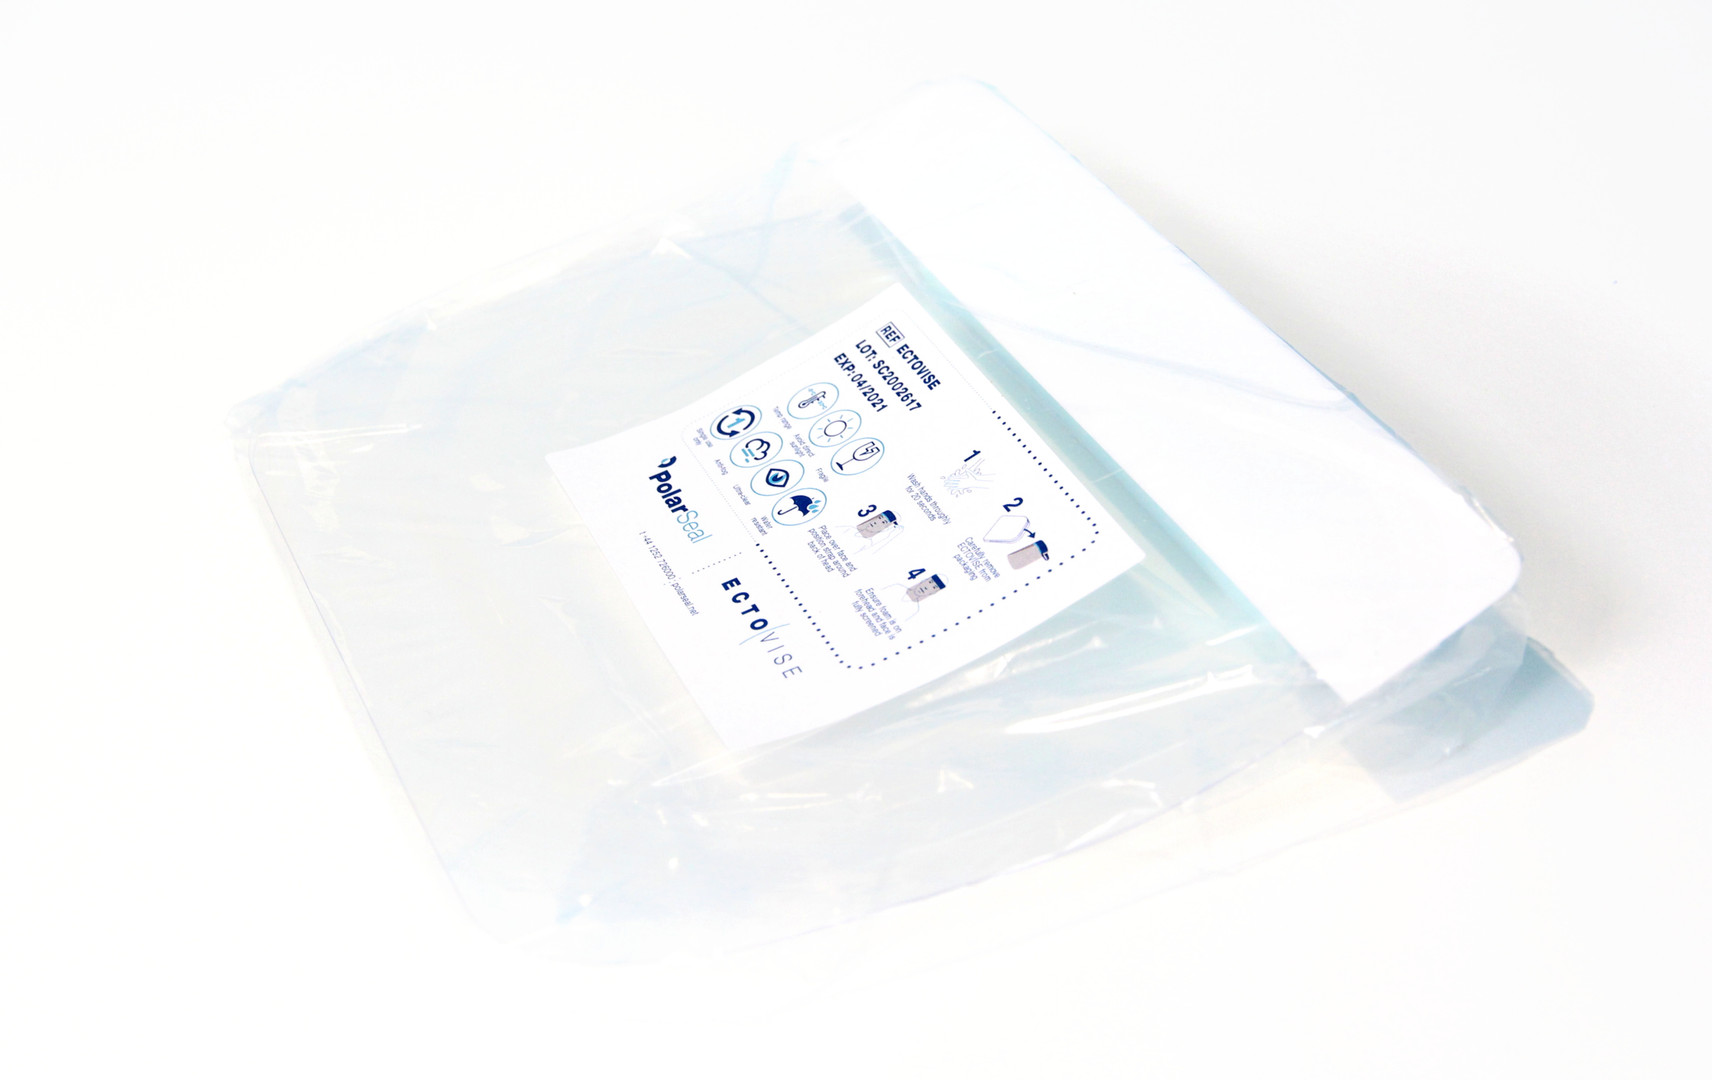 Packaged EctoVise Face Shield